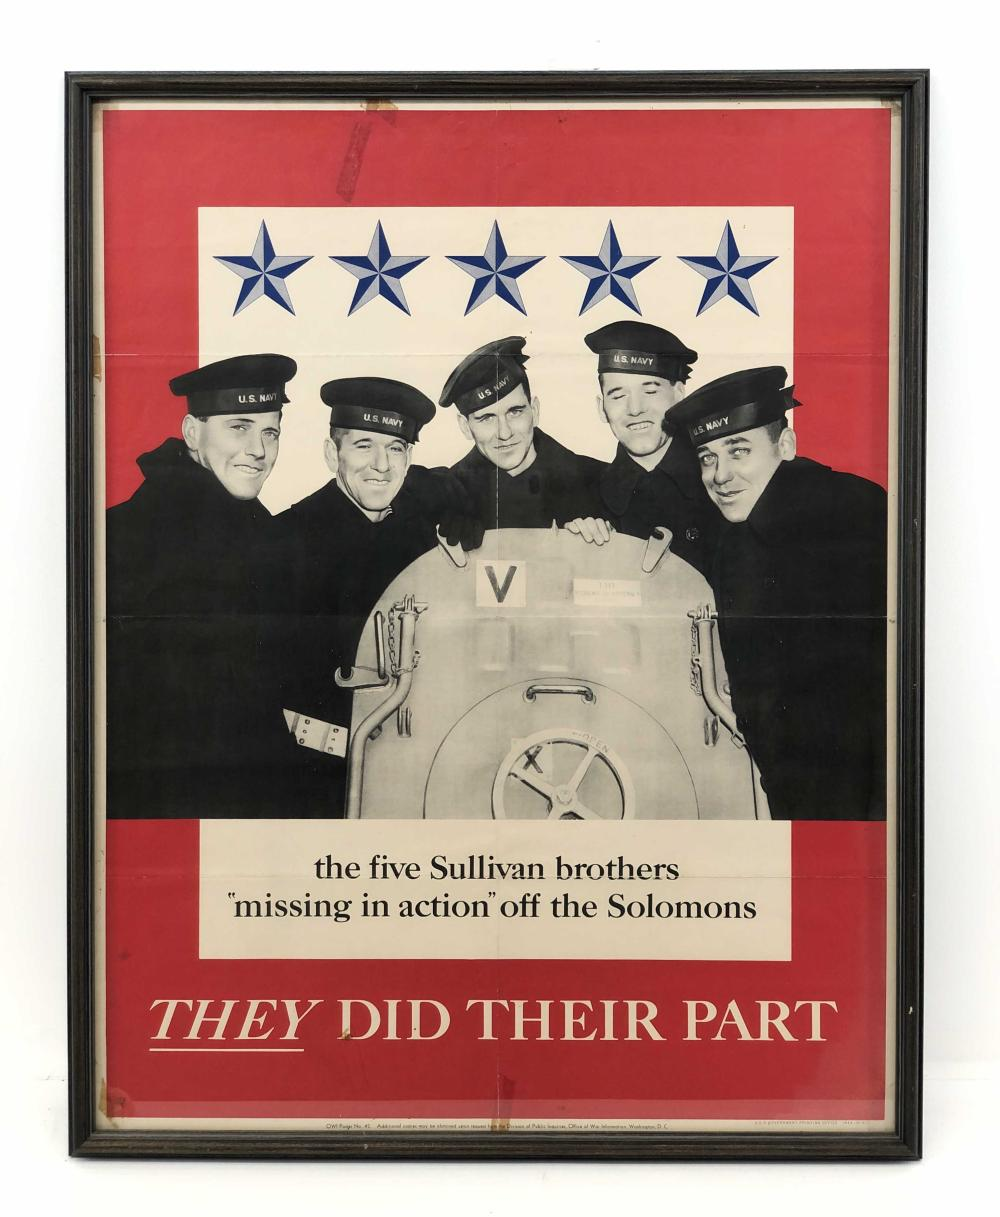 1943 THE FIVE SULLIVAN BROTHERS MISSING IN ACTION POSTER